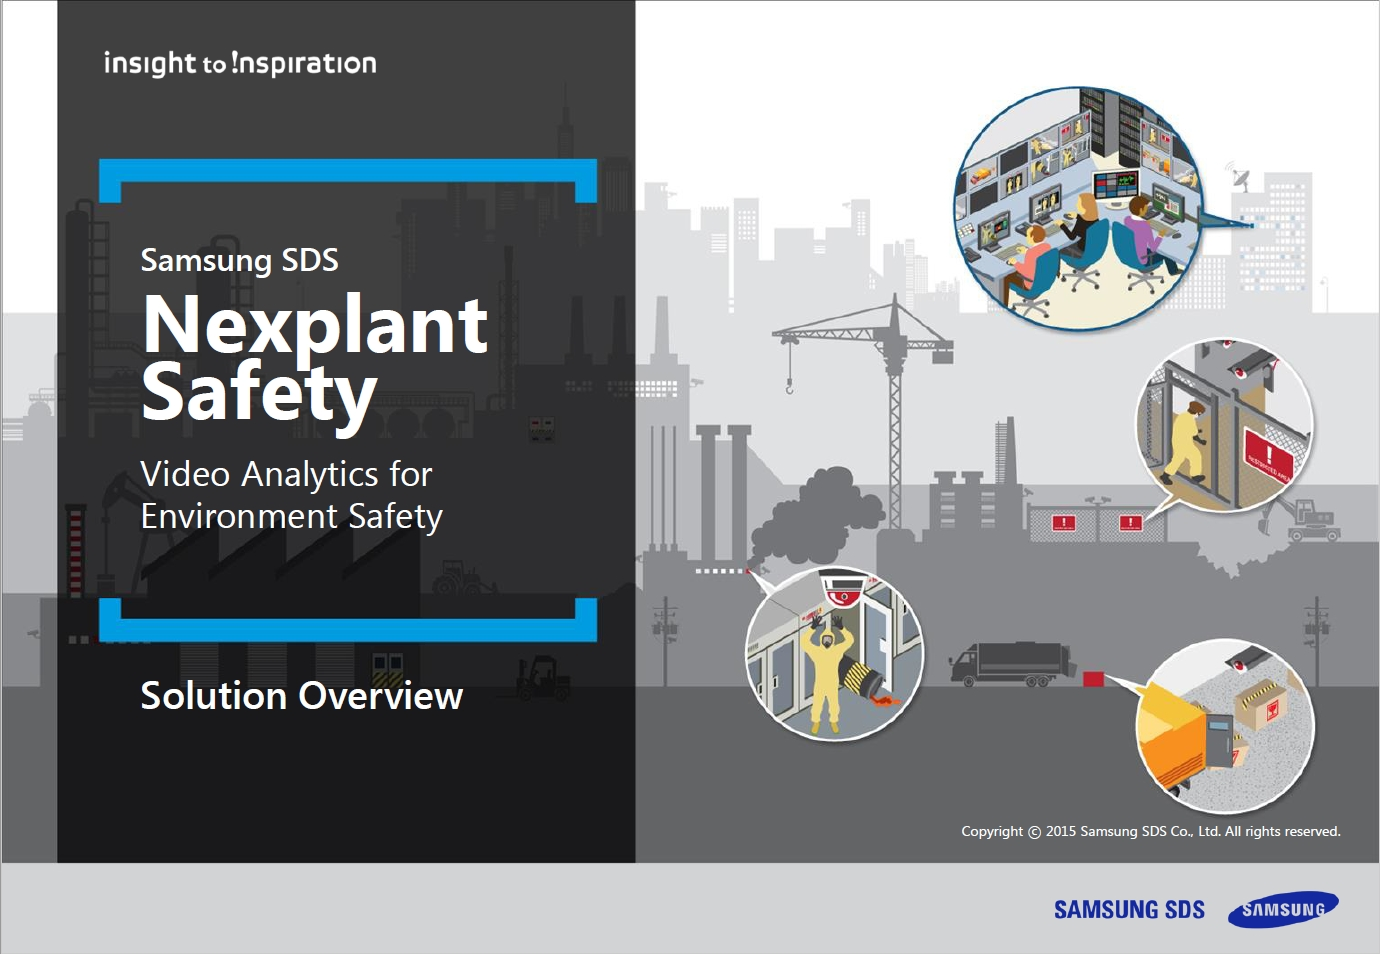 A new standard of safety for your operations